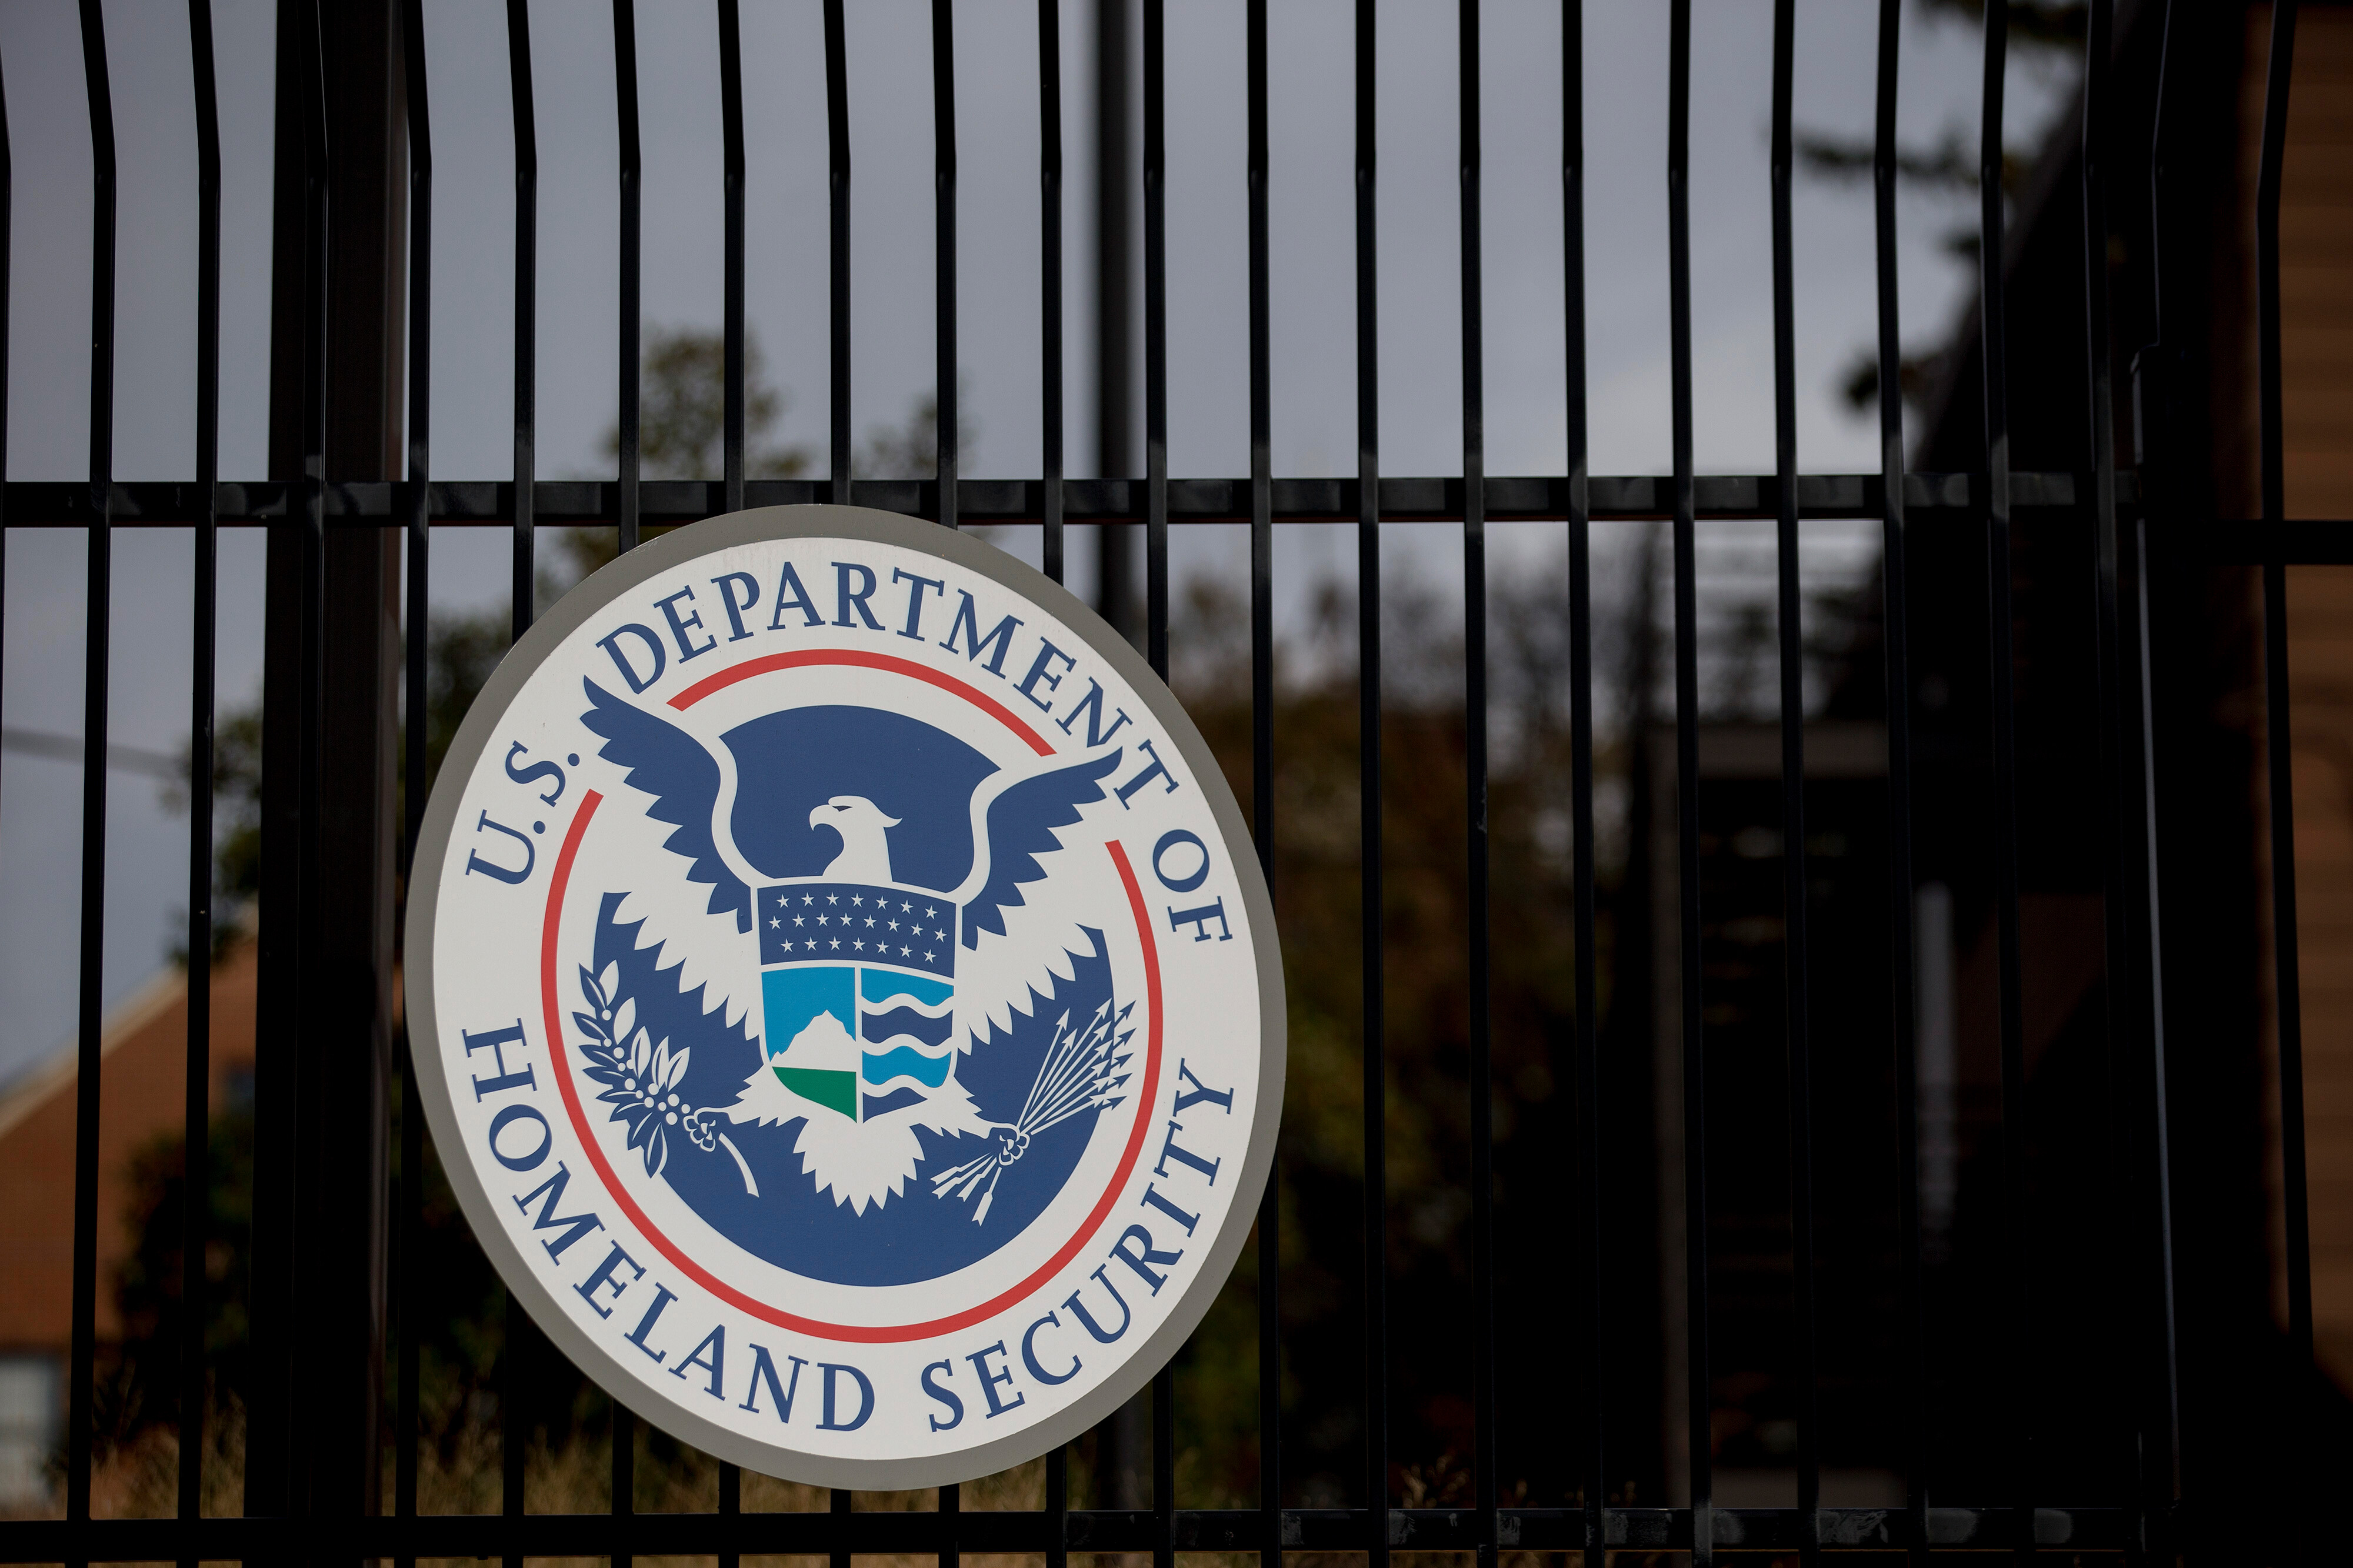 Department of Homeland Security chief of staff resigns, official says